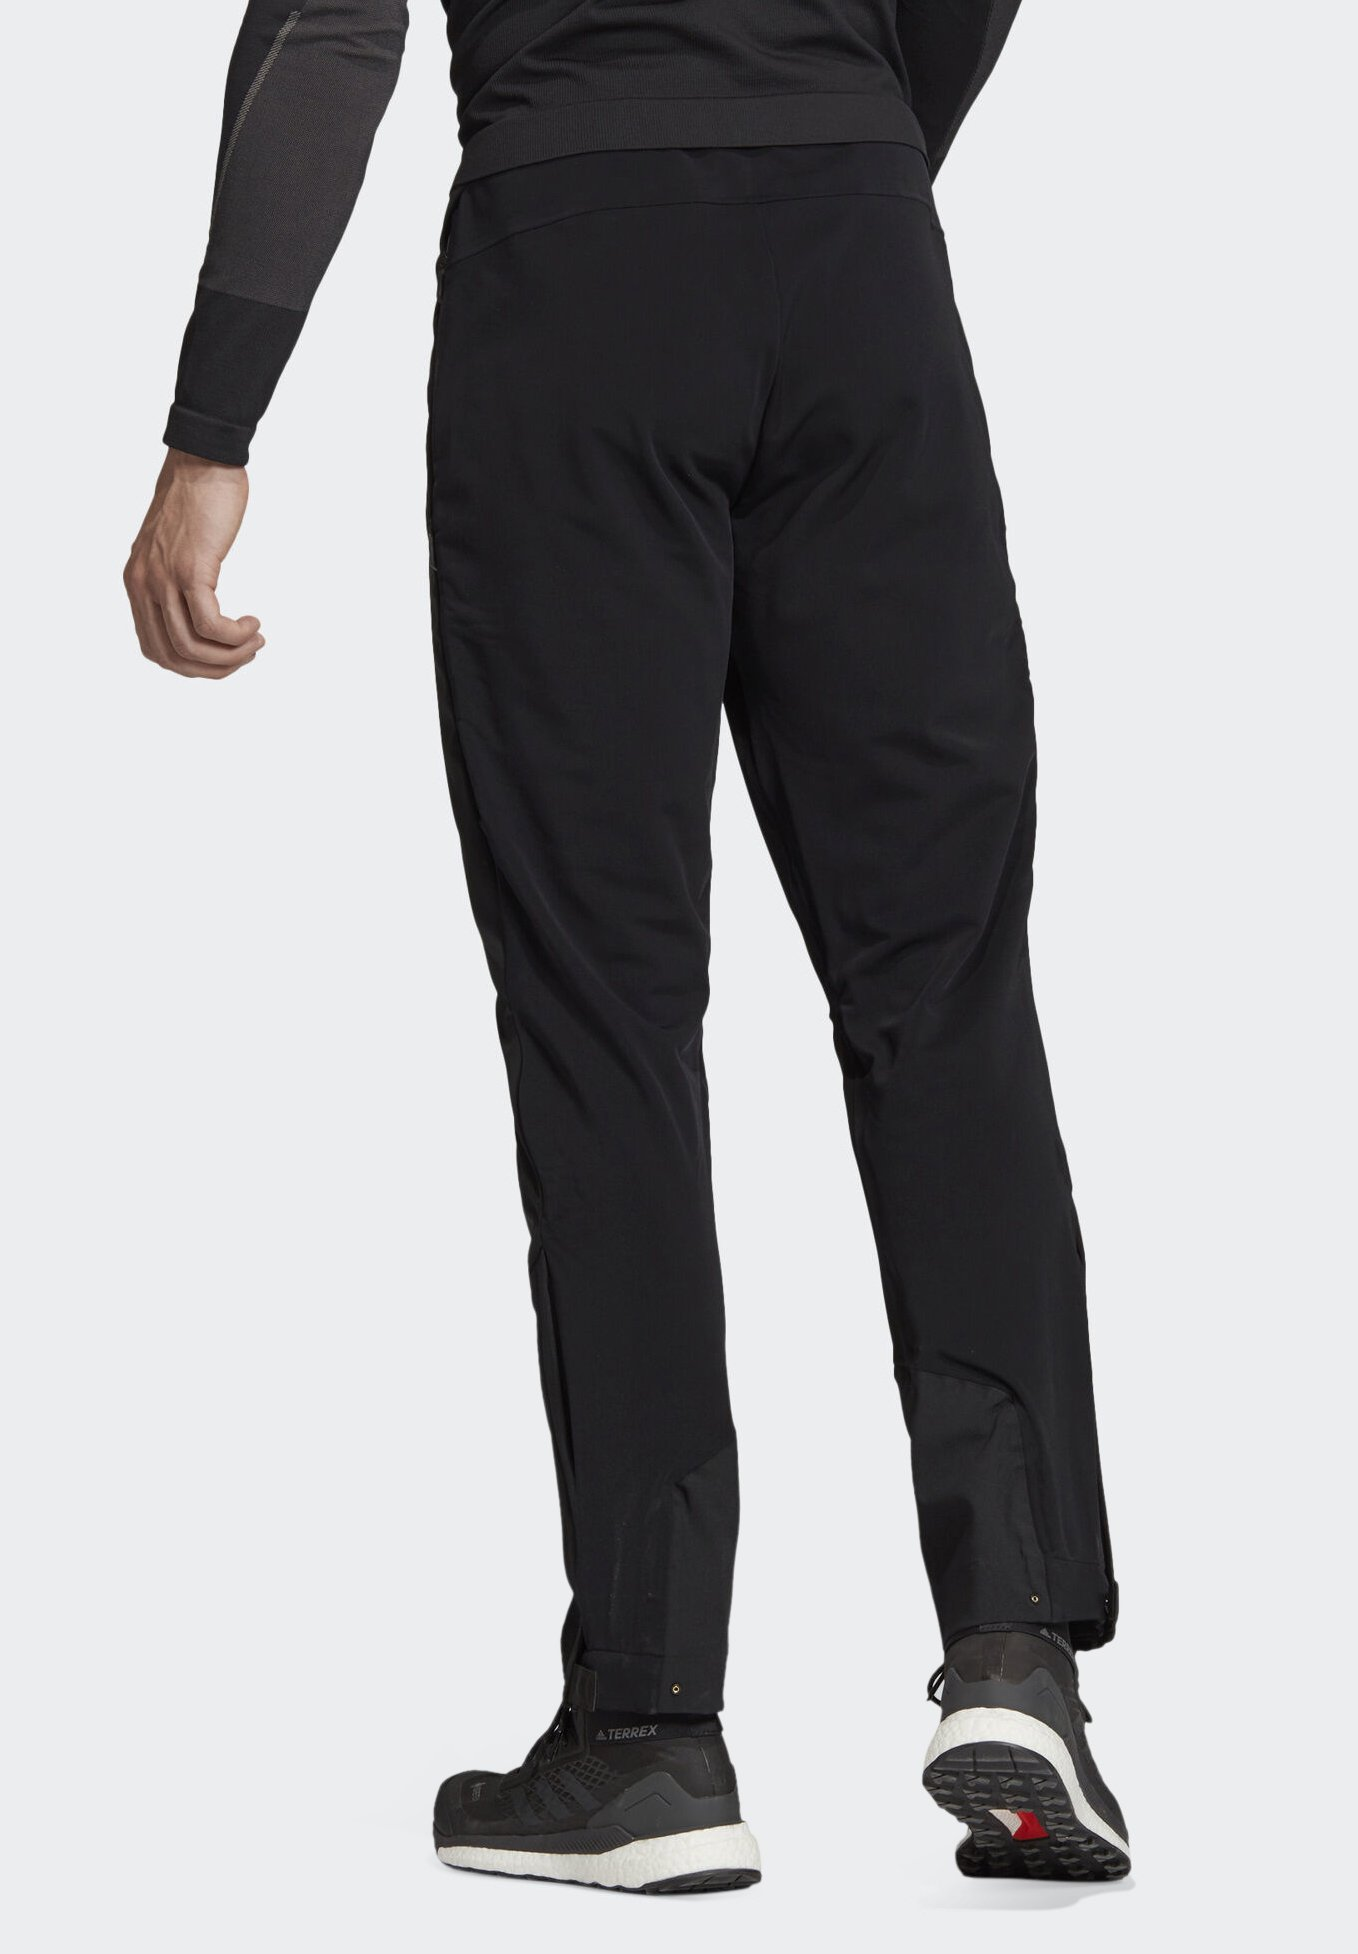 Adidas Performance Terrex Skyrunning Trousers - Trainingsbroek Black dWM297As wt475G8M